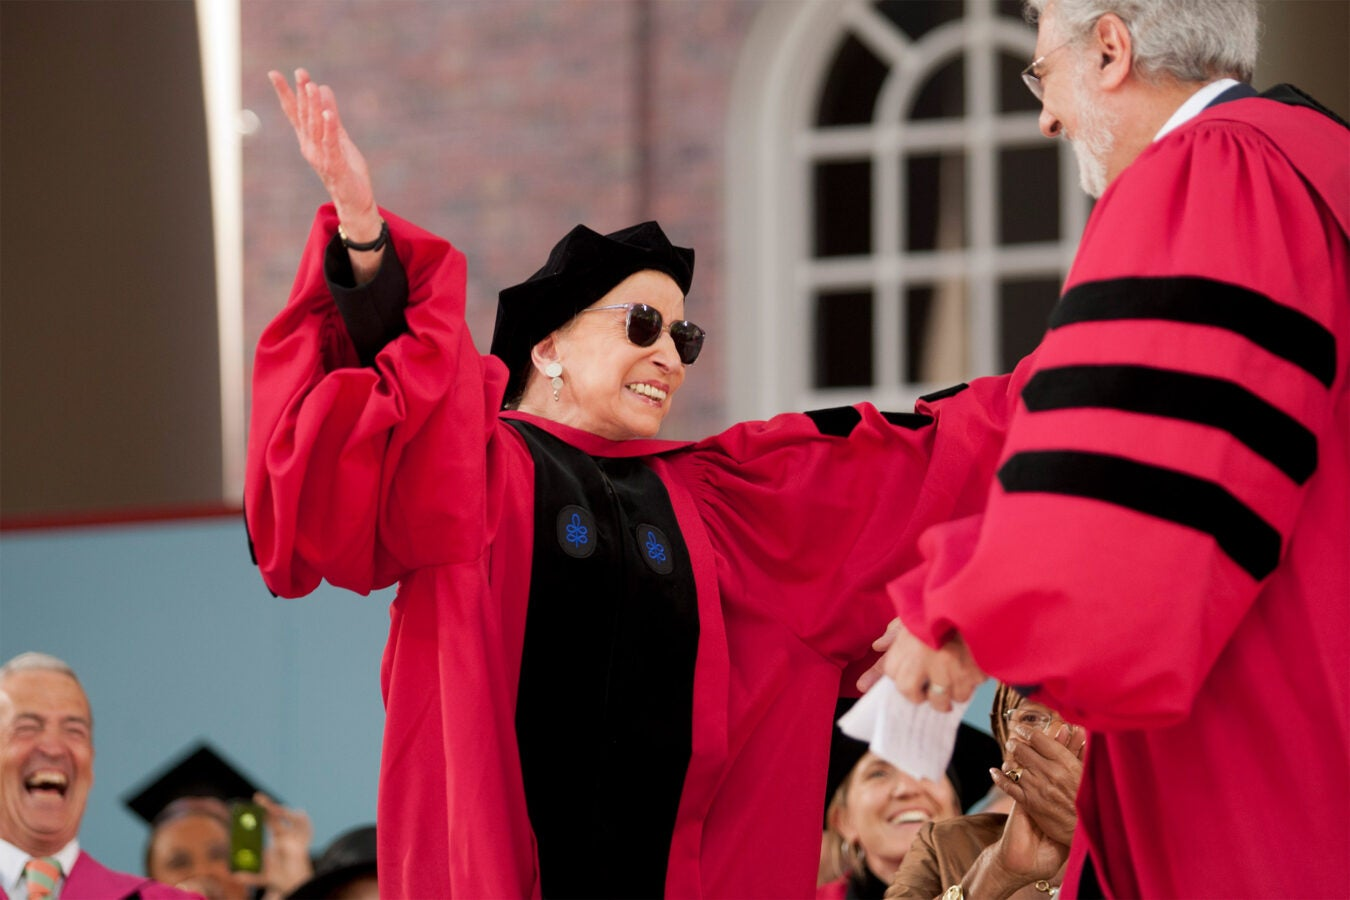 Ruth Bader Ginsburg getting honorary degree.